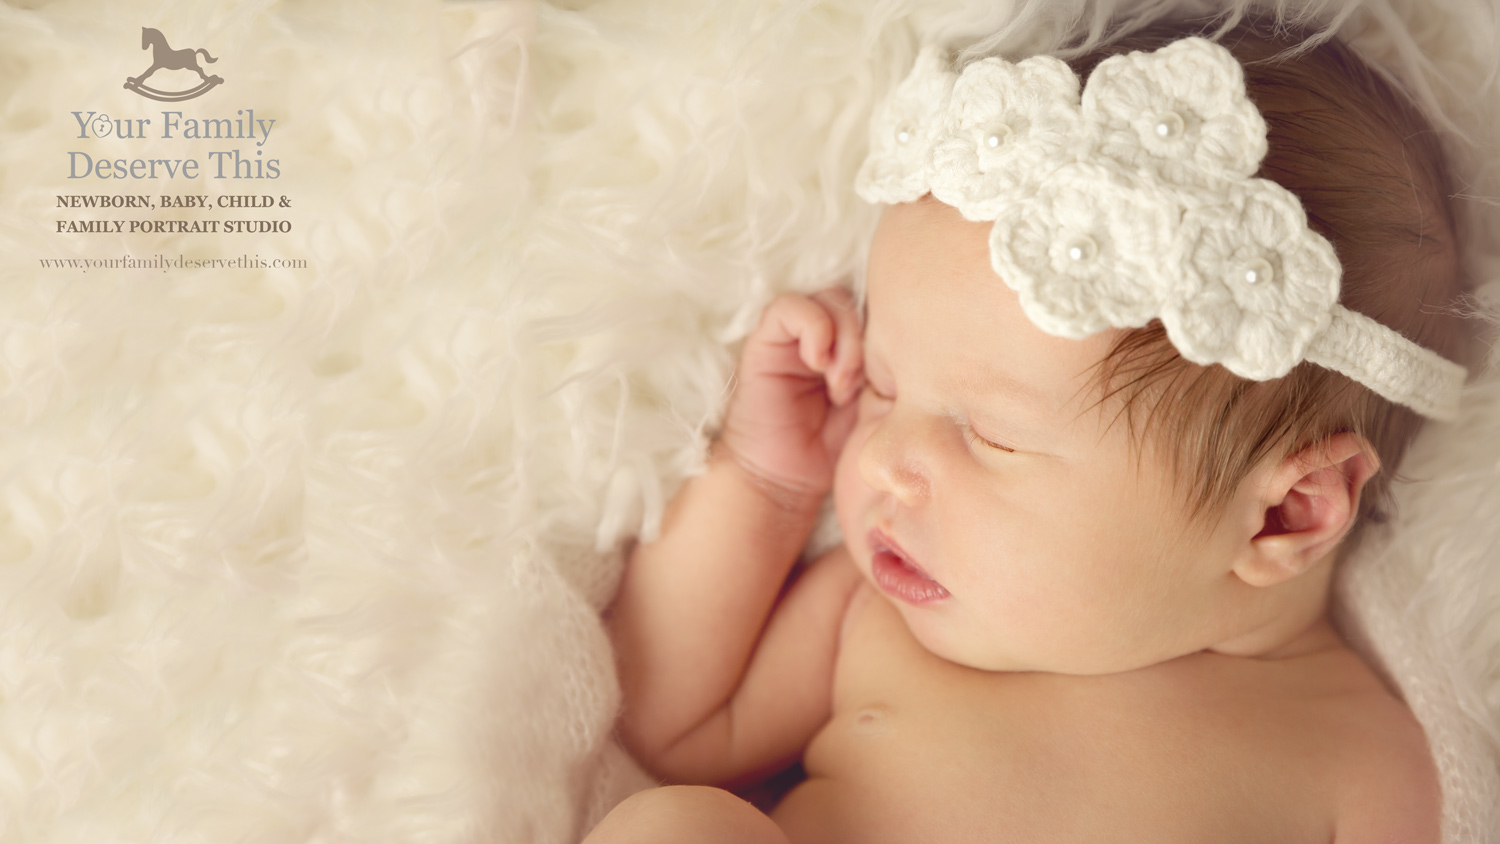 Newborn Photoshoot Gift Vouchers available to purchase from www.yourfamilydeservethis.com